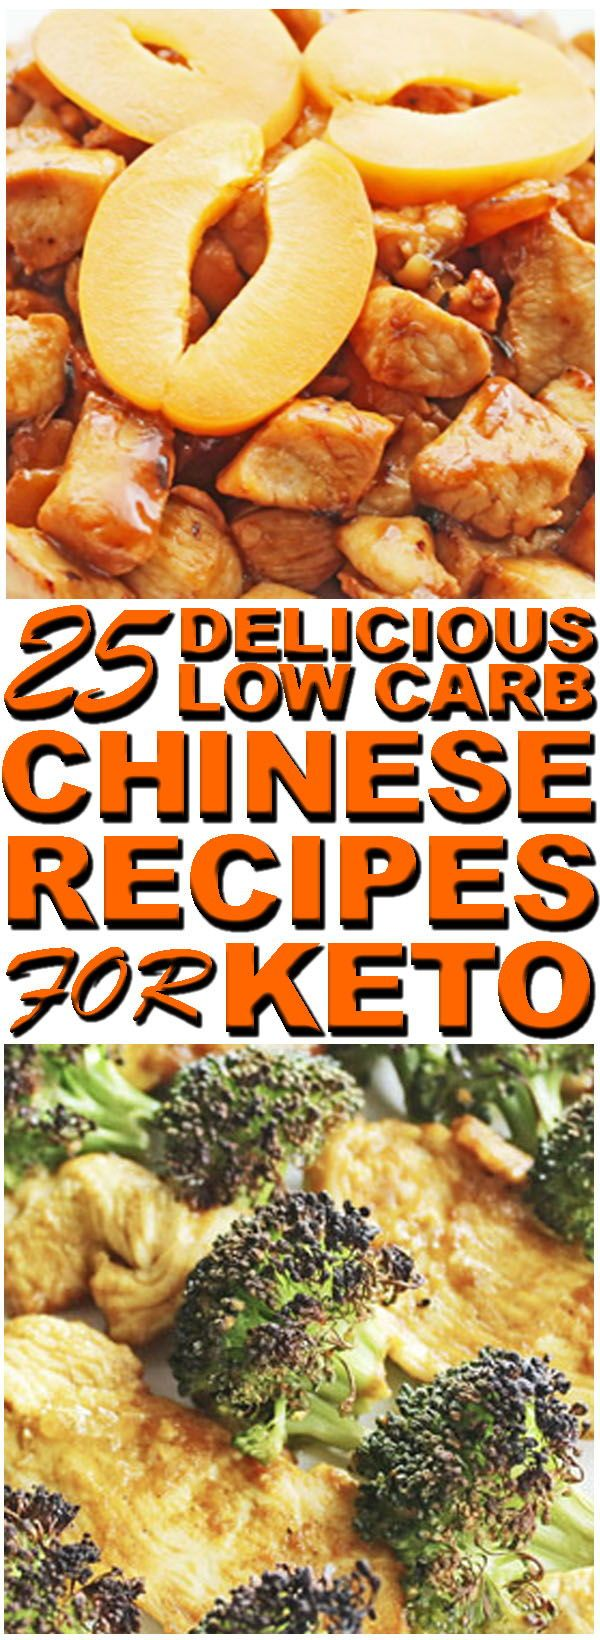 25 low carb keto chinese recipes |